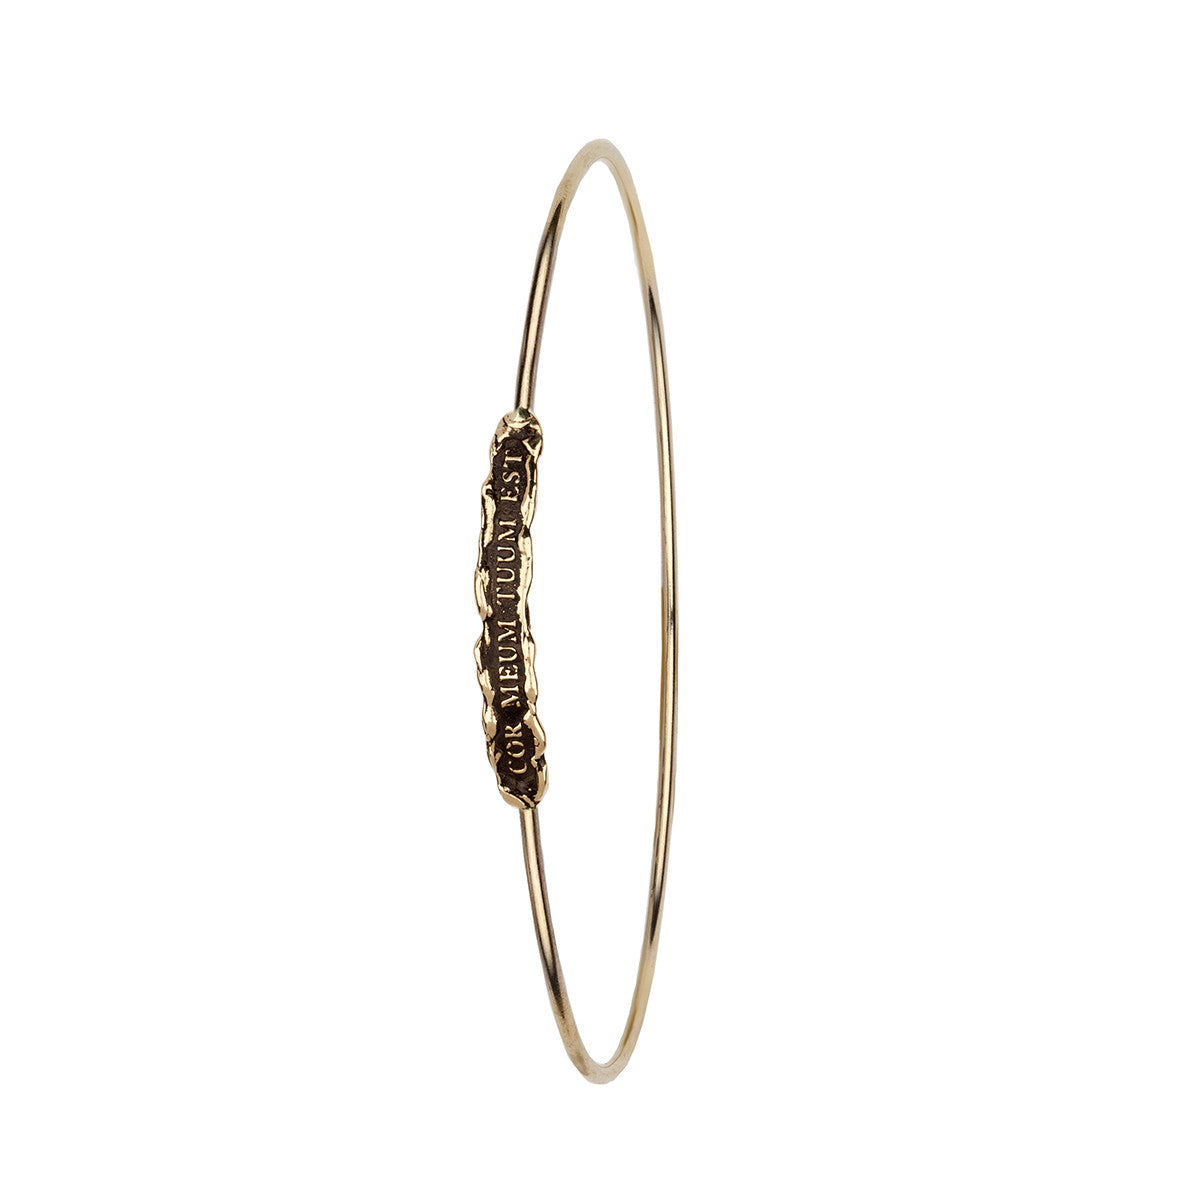 Cor Meum Tuum Est (My Heart is Yours) 14K Gold Polished Bangle